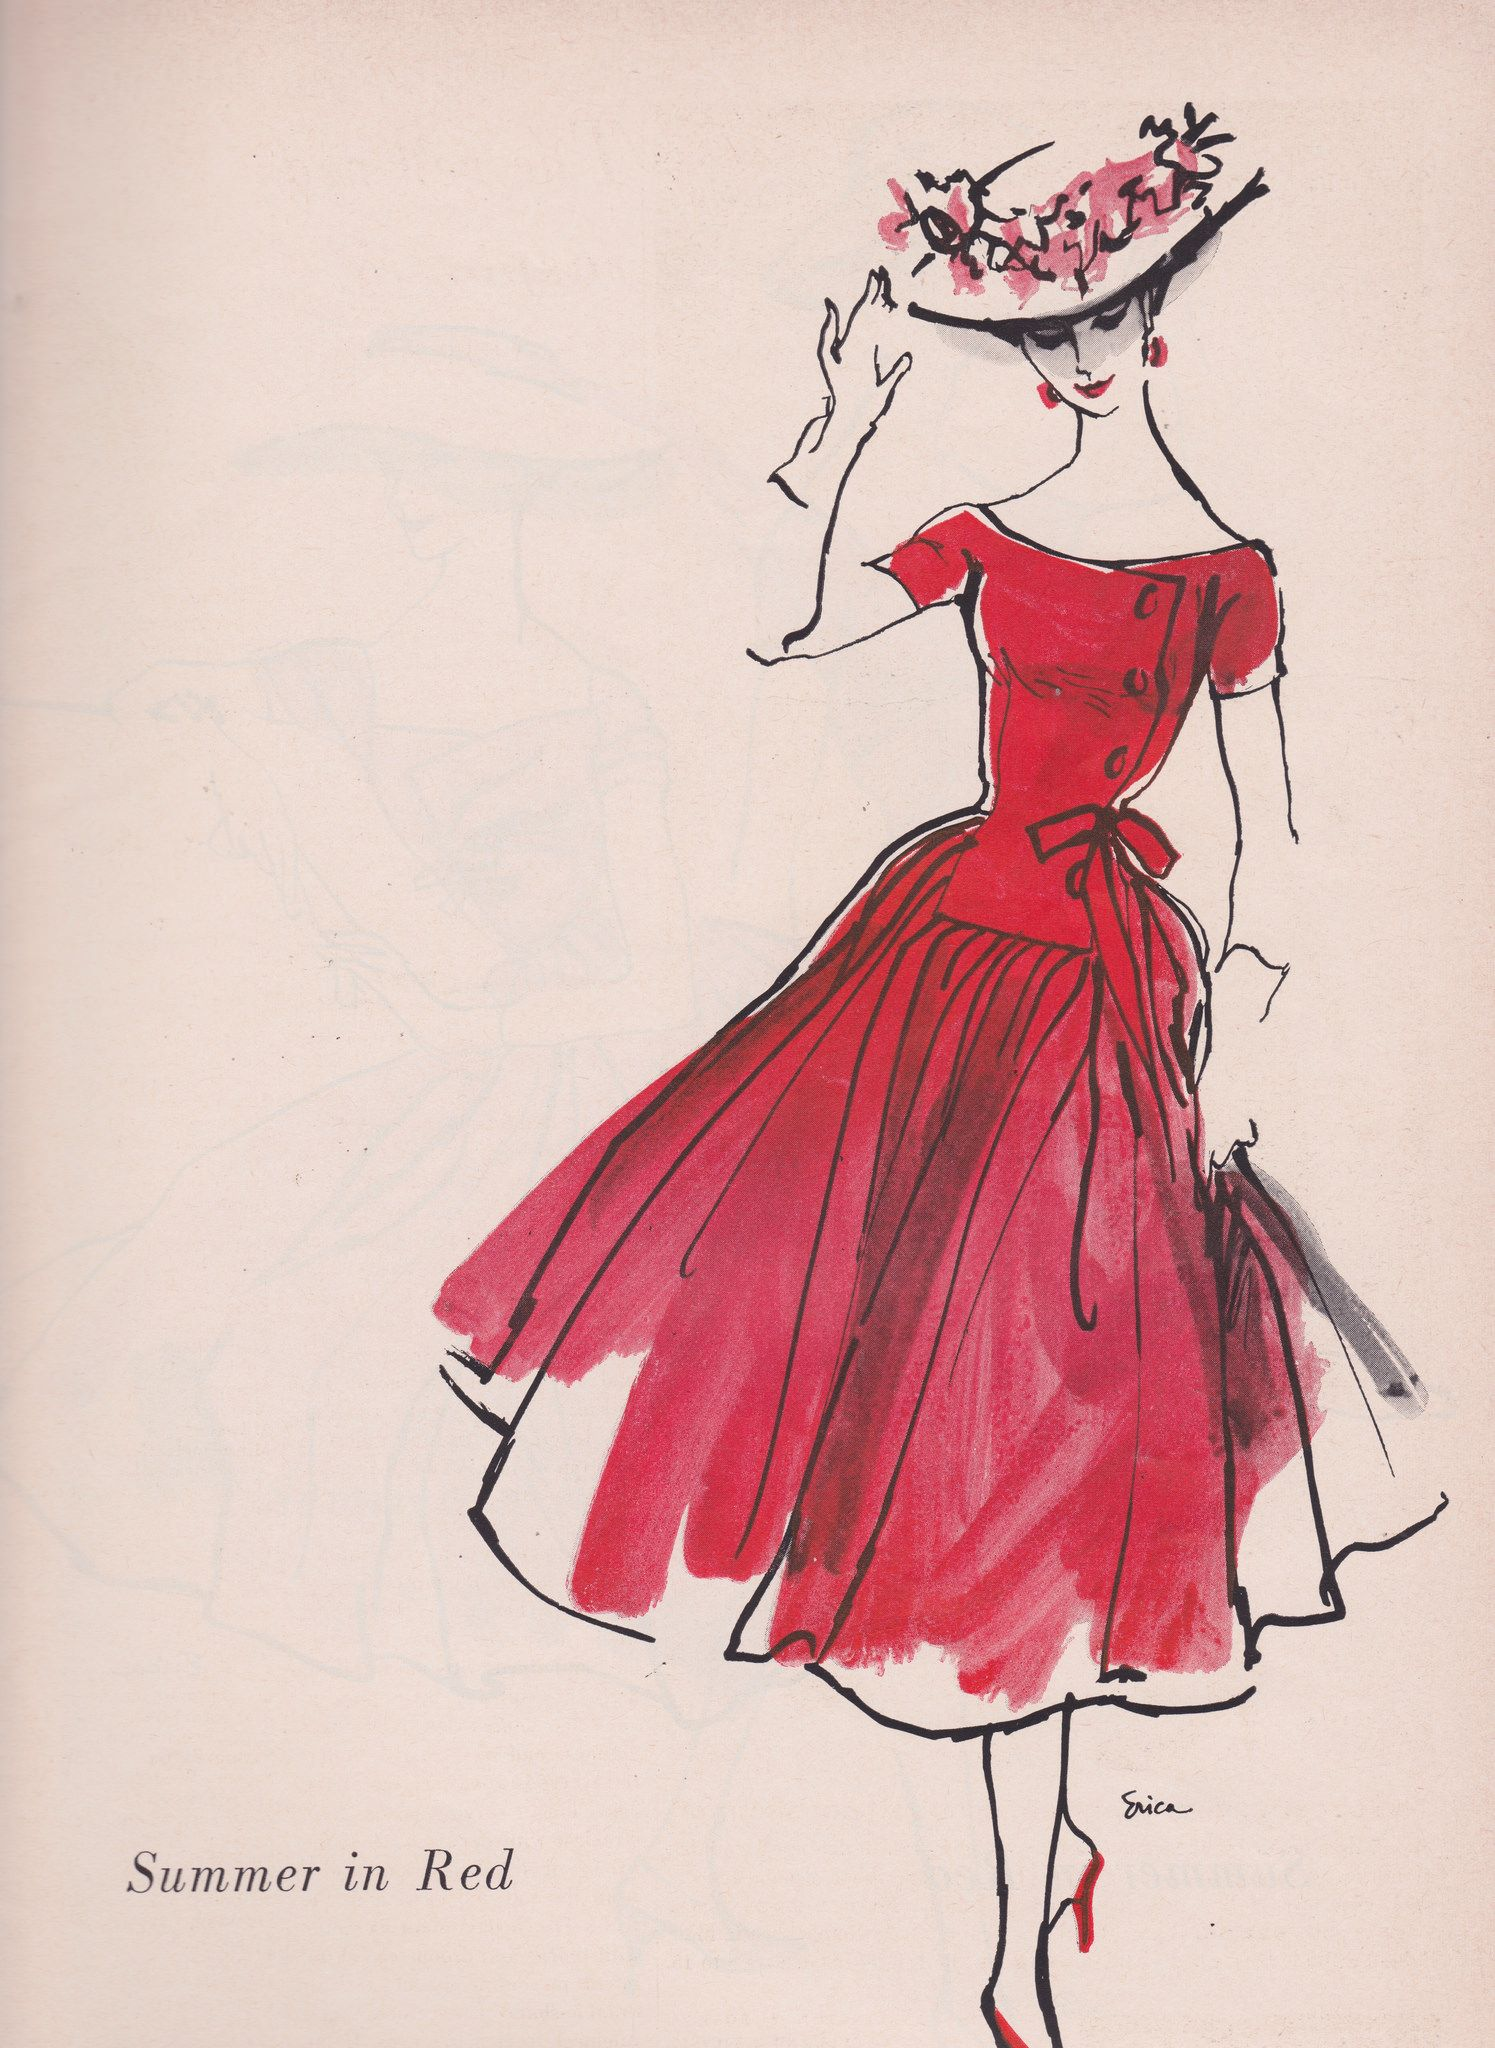 Photo of Mollie Parnis for Wamsutta 1956